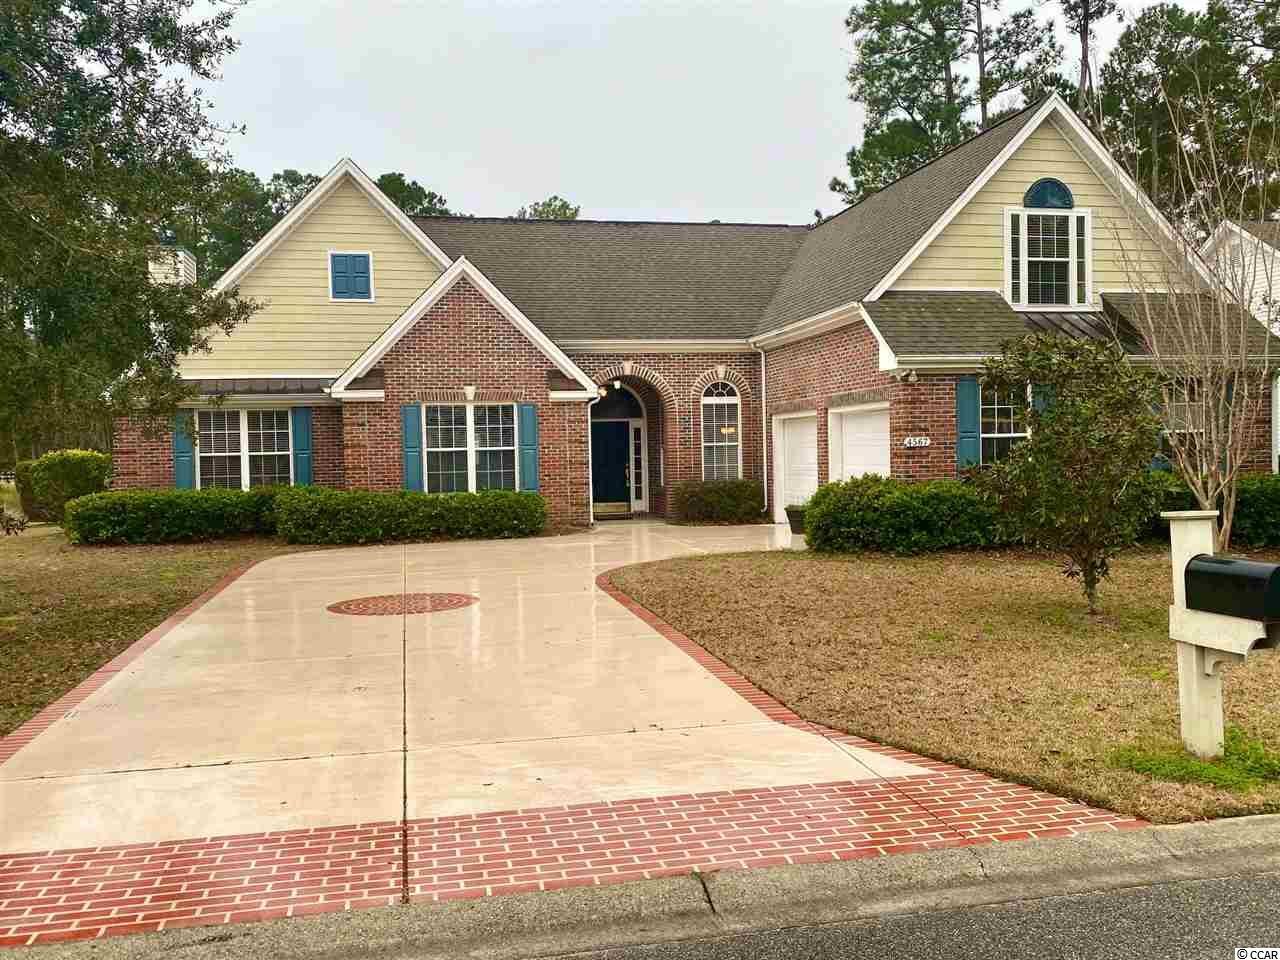 You will love this Gorgeous Brick home in Murrells Inlet with 4 large bedrooms and 3.5 Bathrooms. Located on the golf course in the executive section in Wachesaw Plantation East. The family room with vaulted ceilings and fireplace that spills into the Carolina Room with gorgeous lake and fairway views. The large open kitchen with breakfast nook, work island, granite countertops and stainless appliances is open to the family room.  The formal dining room is accented by beautiful moldings and trey ceilings. The huge master suite is tucked away on its own wing and has its own fireplace and sitting area and private covered patio. The master bath is perfectly appointed with a large walk in closet, a private water closet, double vanities, a deep soaking tub and a walk in shower. Wachesaw East offers a wide variety of exclusive amenities, there is a community pool, tennis courts, a clubhouse with an exercise room, walking trails throughout this gorgeous treelined community with work out stations, 24 hour gated guarded security and the gorgeous 18 hole signature golf course. The Waccawachee Boat Ramp and Marina is just down the street from the back gate. Close to Tidelands Hospital, Restaurants, shops and world class entertainment in the Murrells Inlet Marshwalk!!